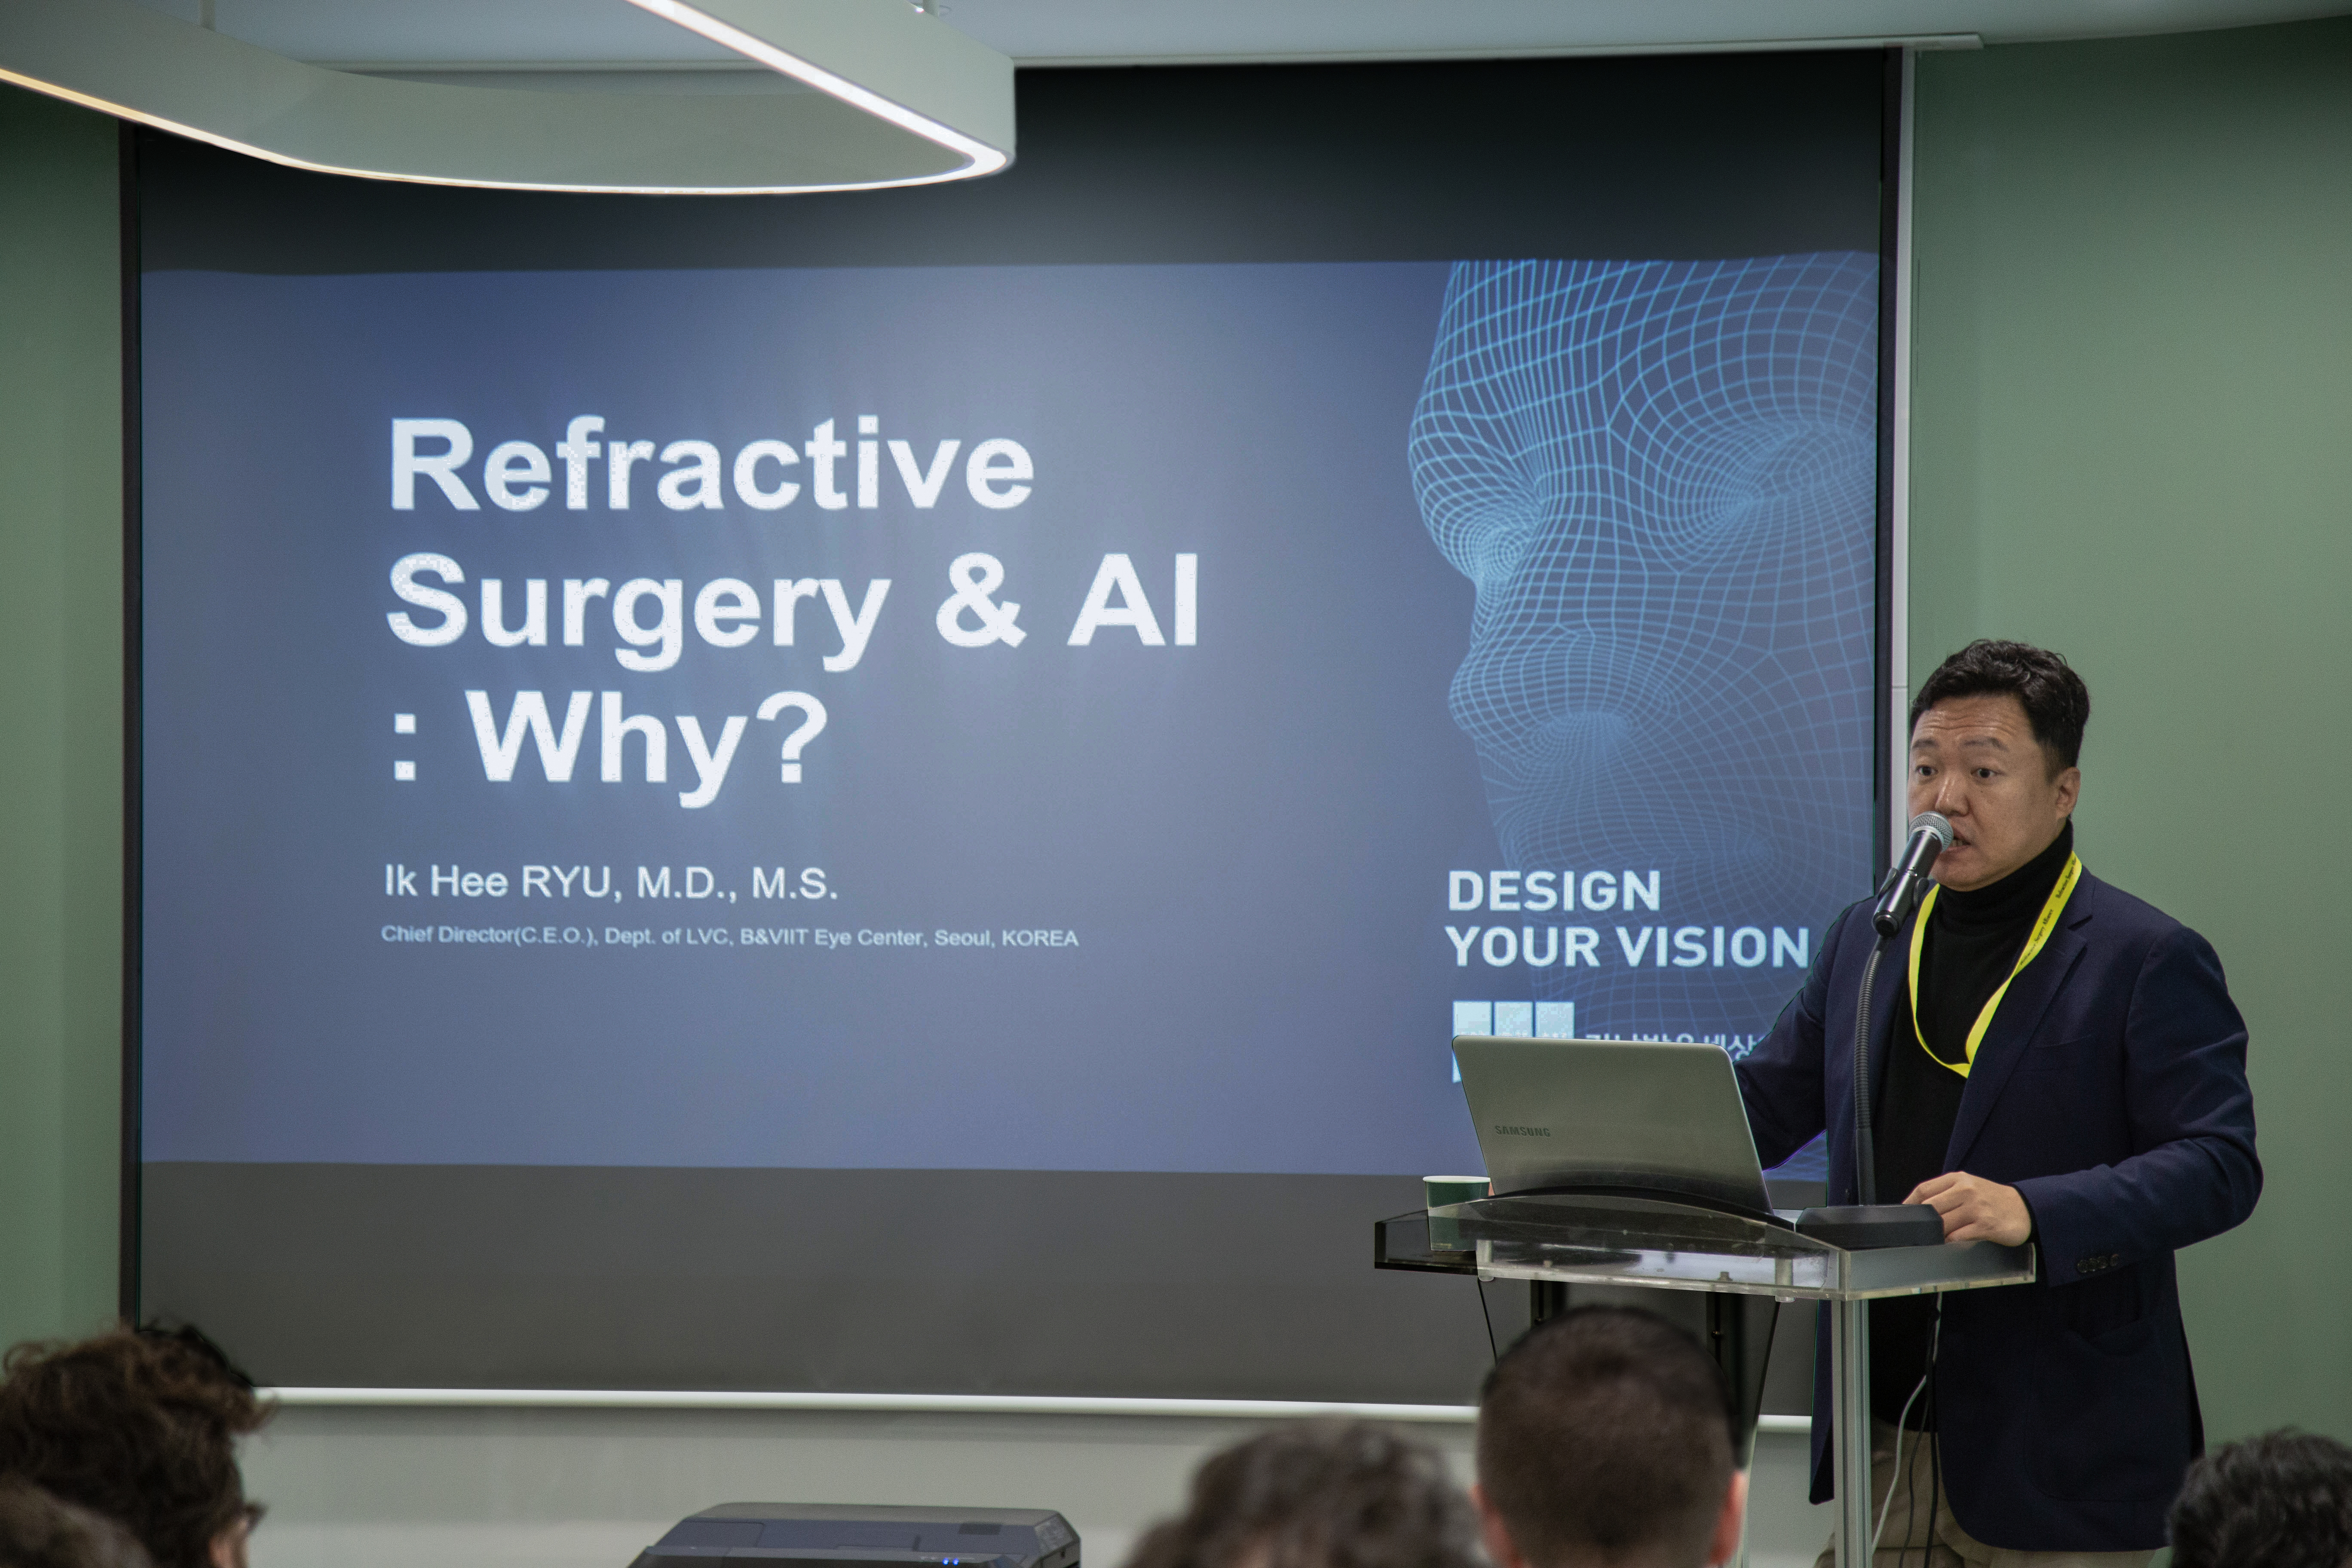 Ik Hee Ryu, MD, MS from B&VIIT Eye Center is speaking at a conference of B&VIIT AI.